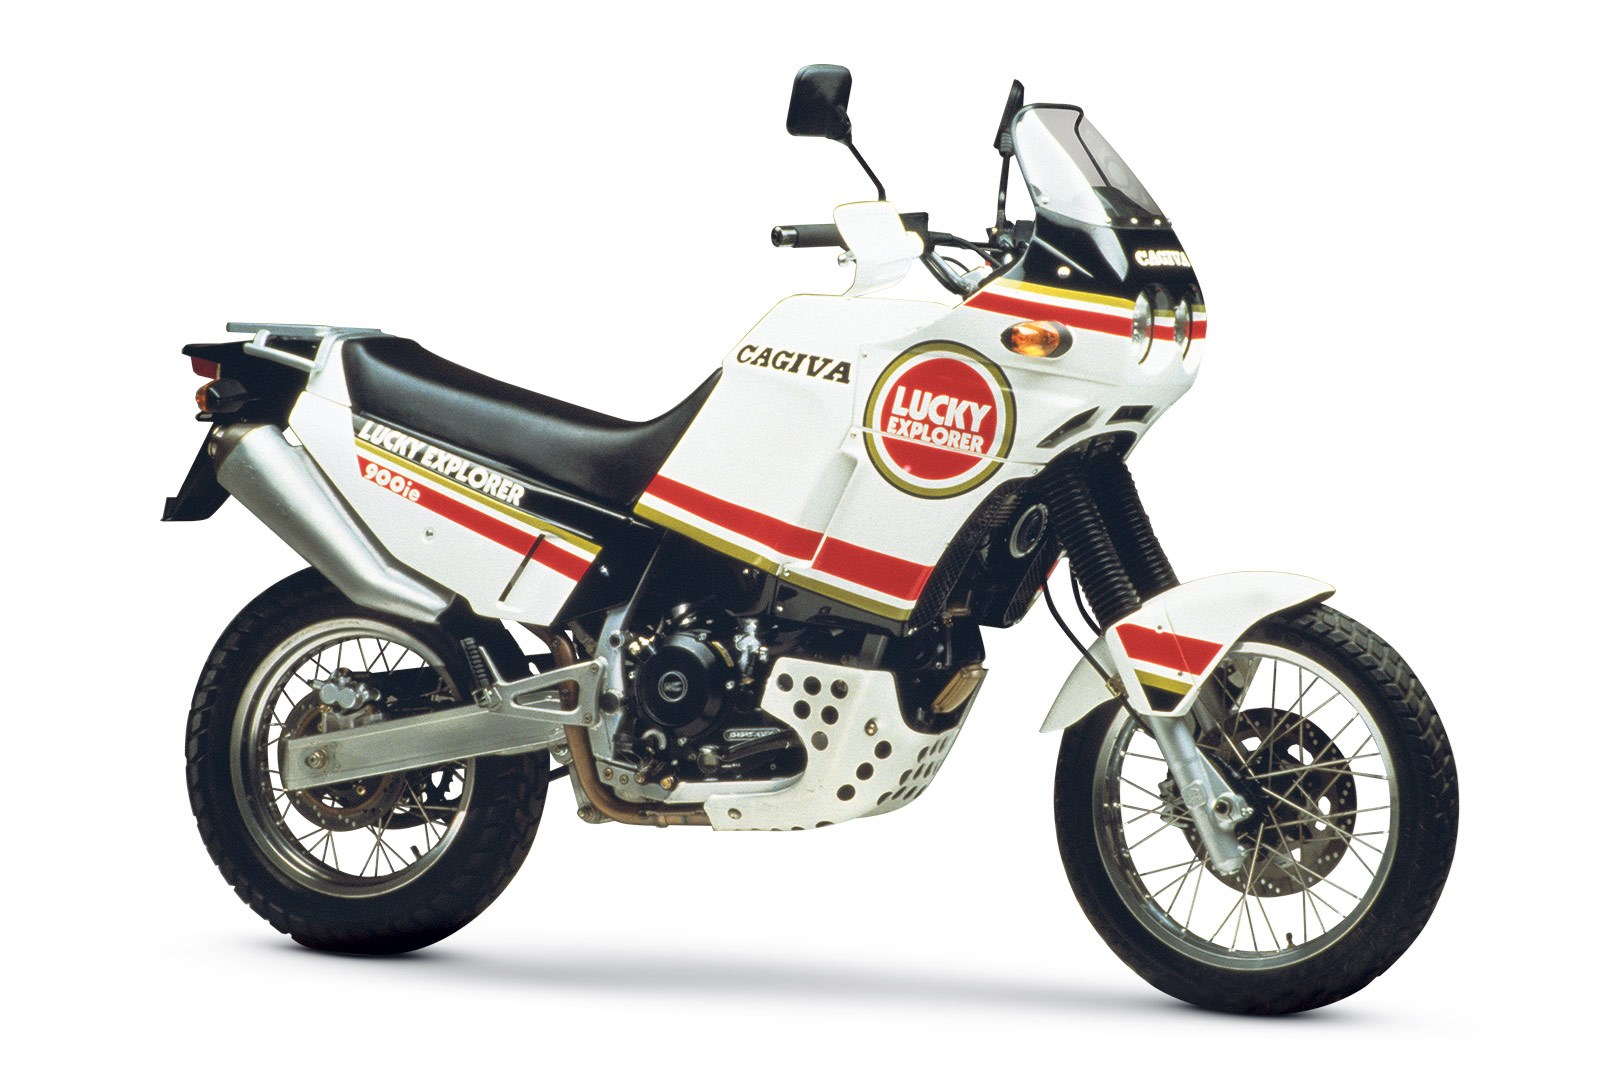 Cagiva Grand Canyon 1998 images #67460